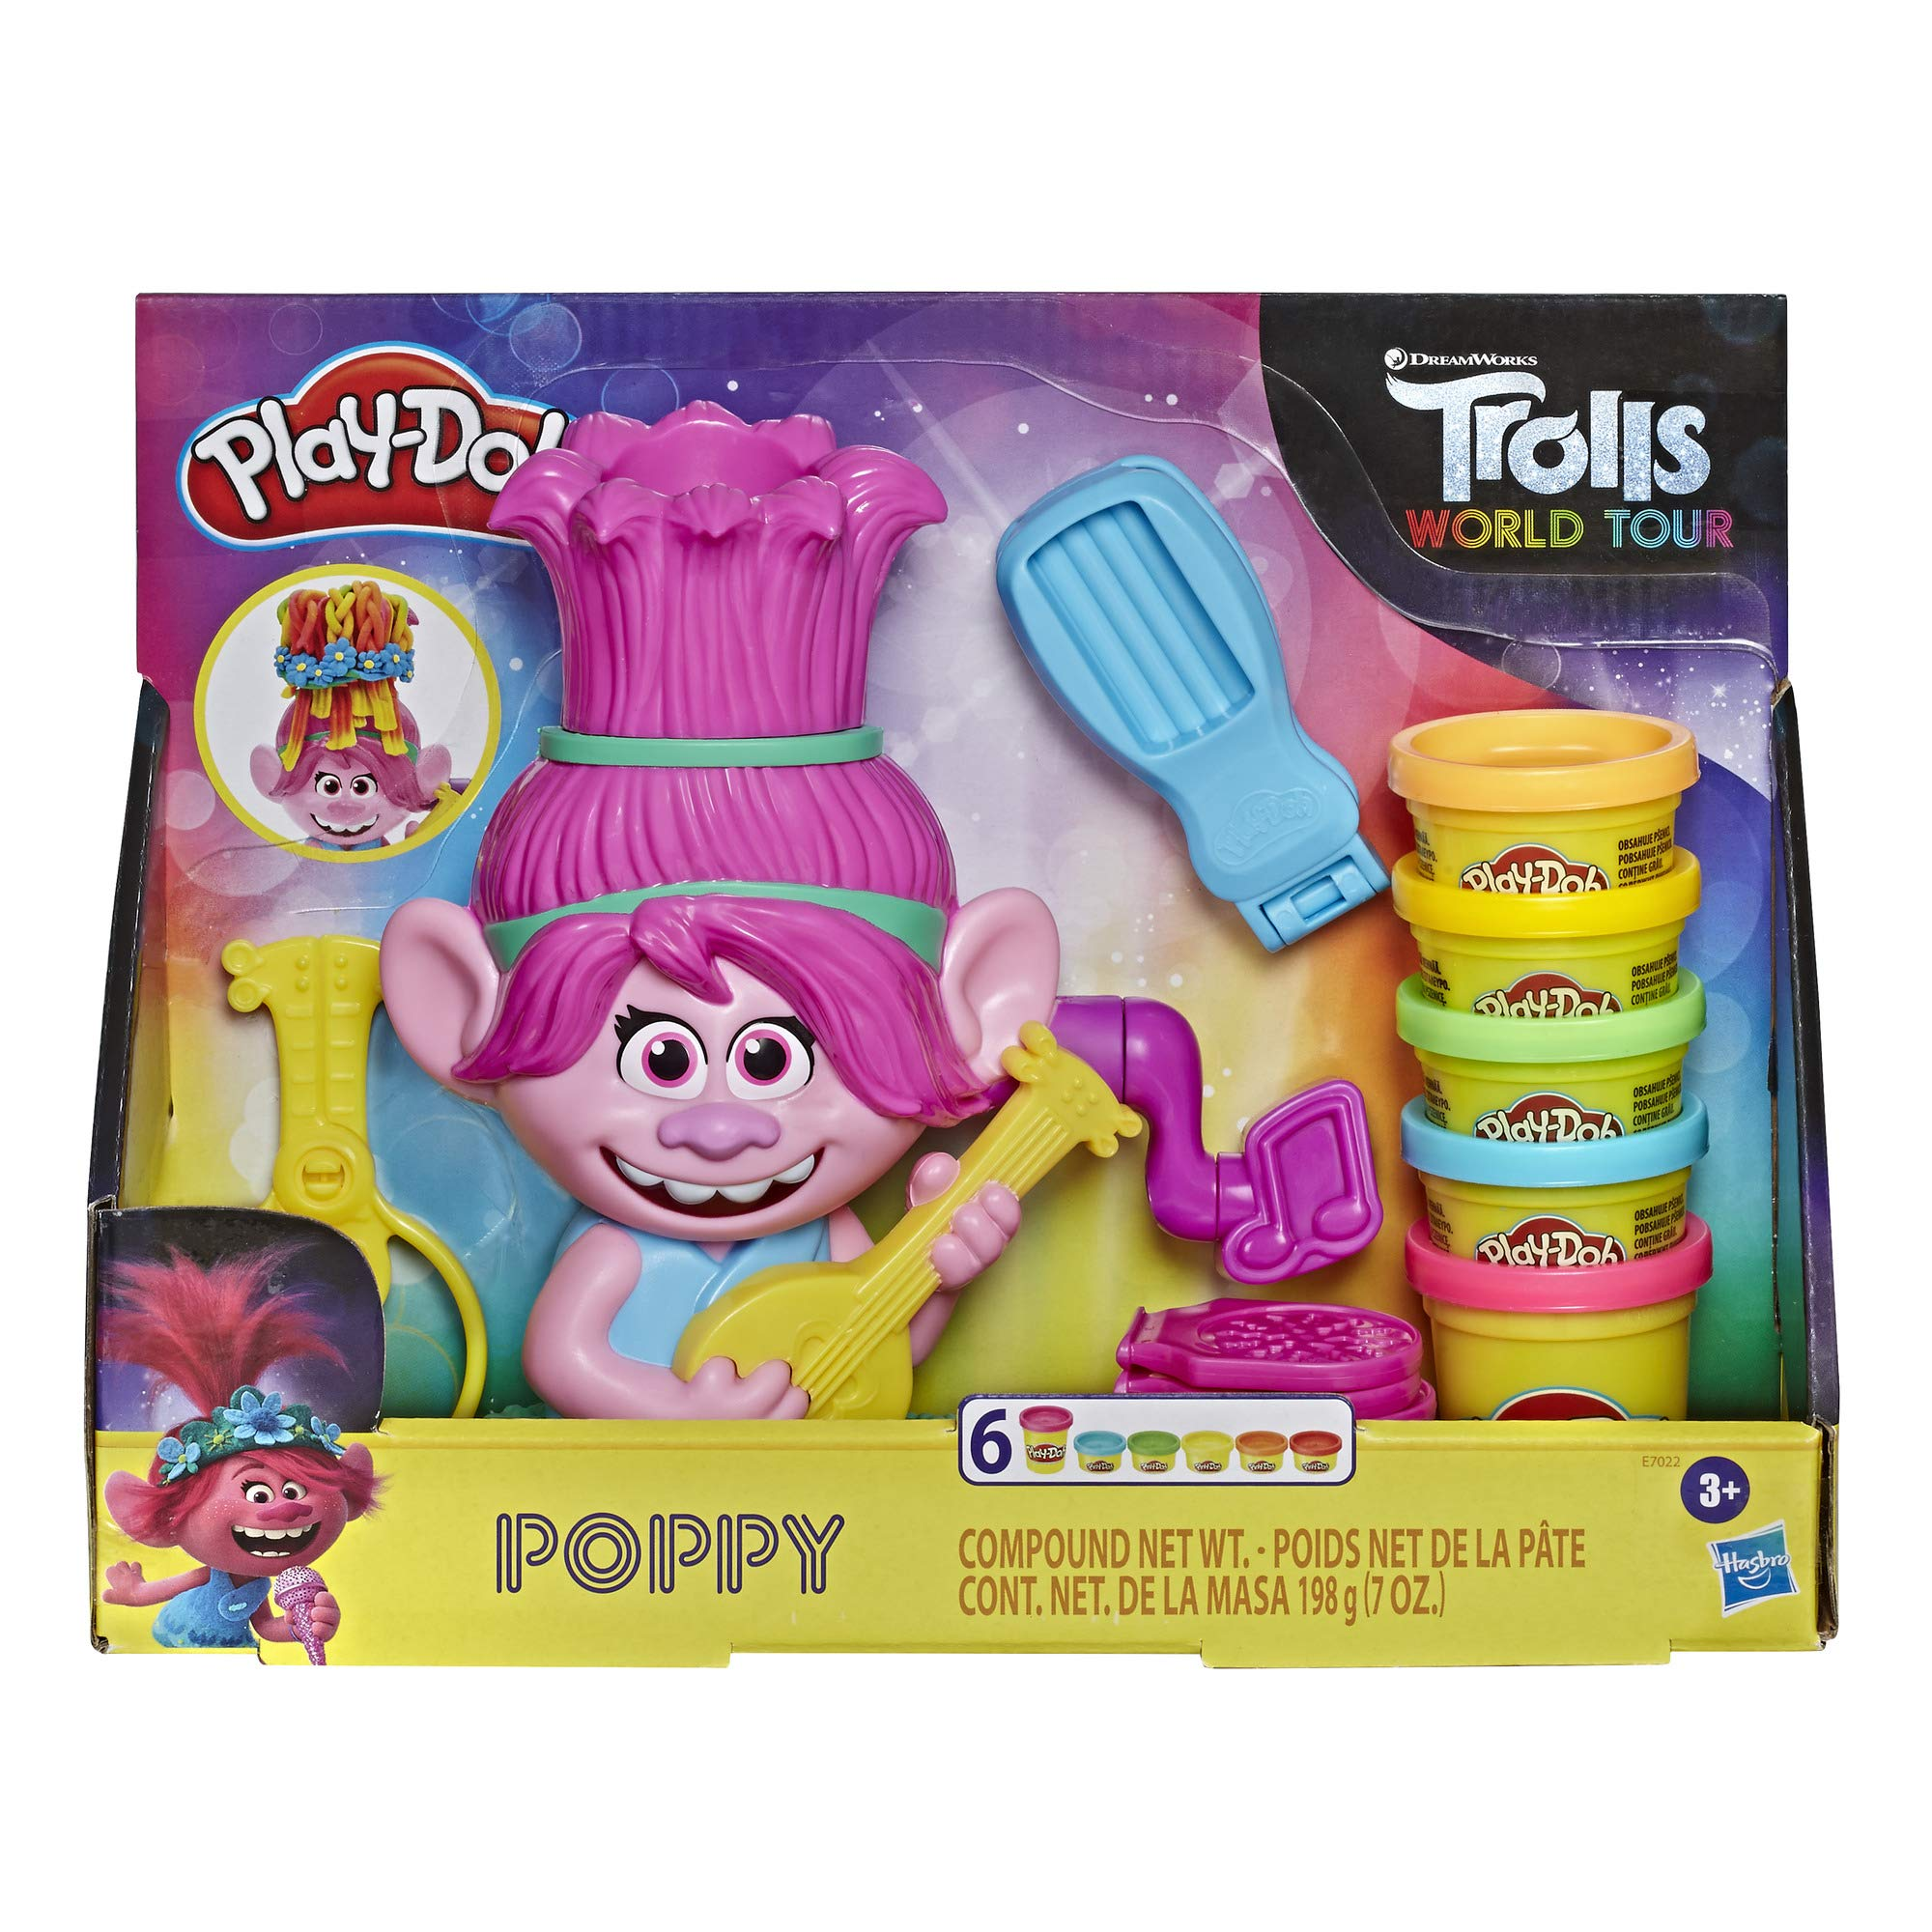 Play-Doh Trolls World Tour Rainbow Hair Poppy Styling Toy for Children 3 Years and Up with 6 Non-Toxic Colours